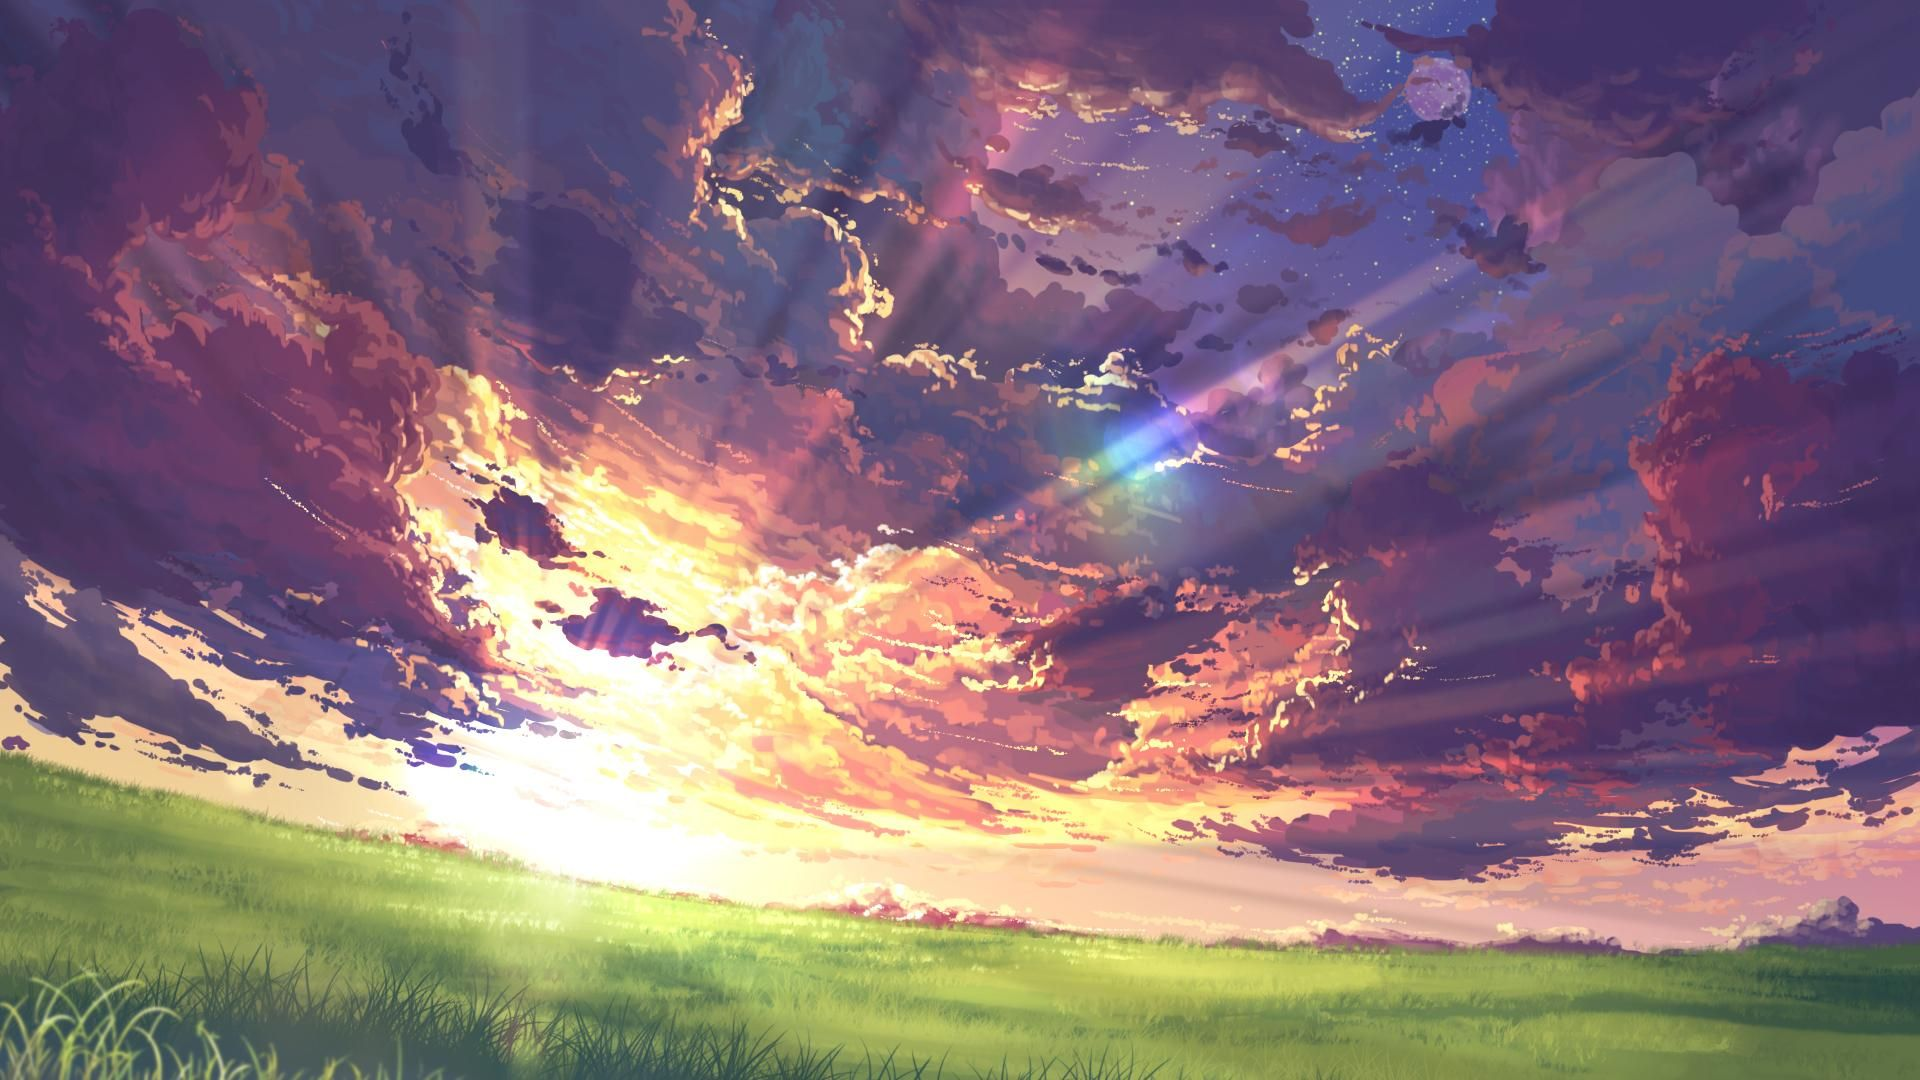 Vibrant Dawn 1920 X 1080 Reddit Hd Wallpapers Wallpaper Anime